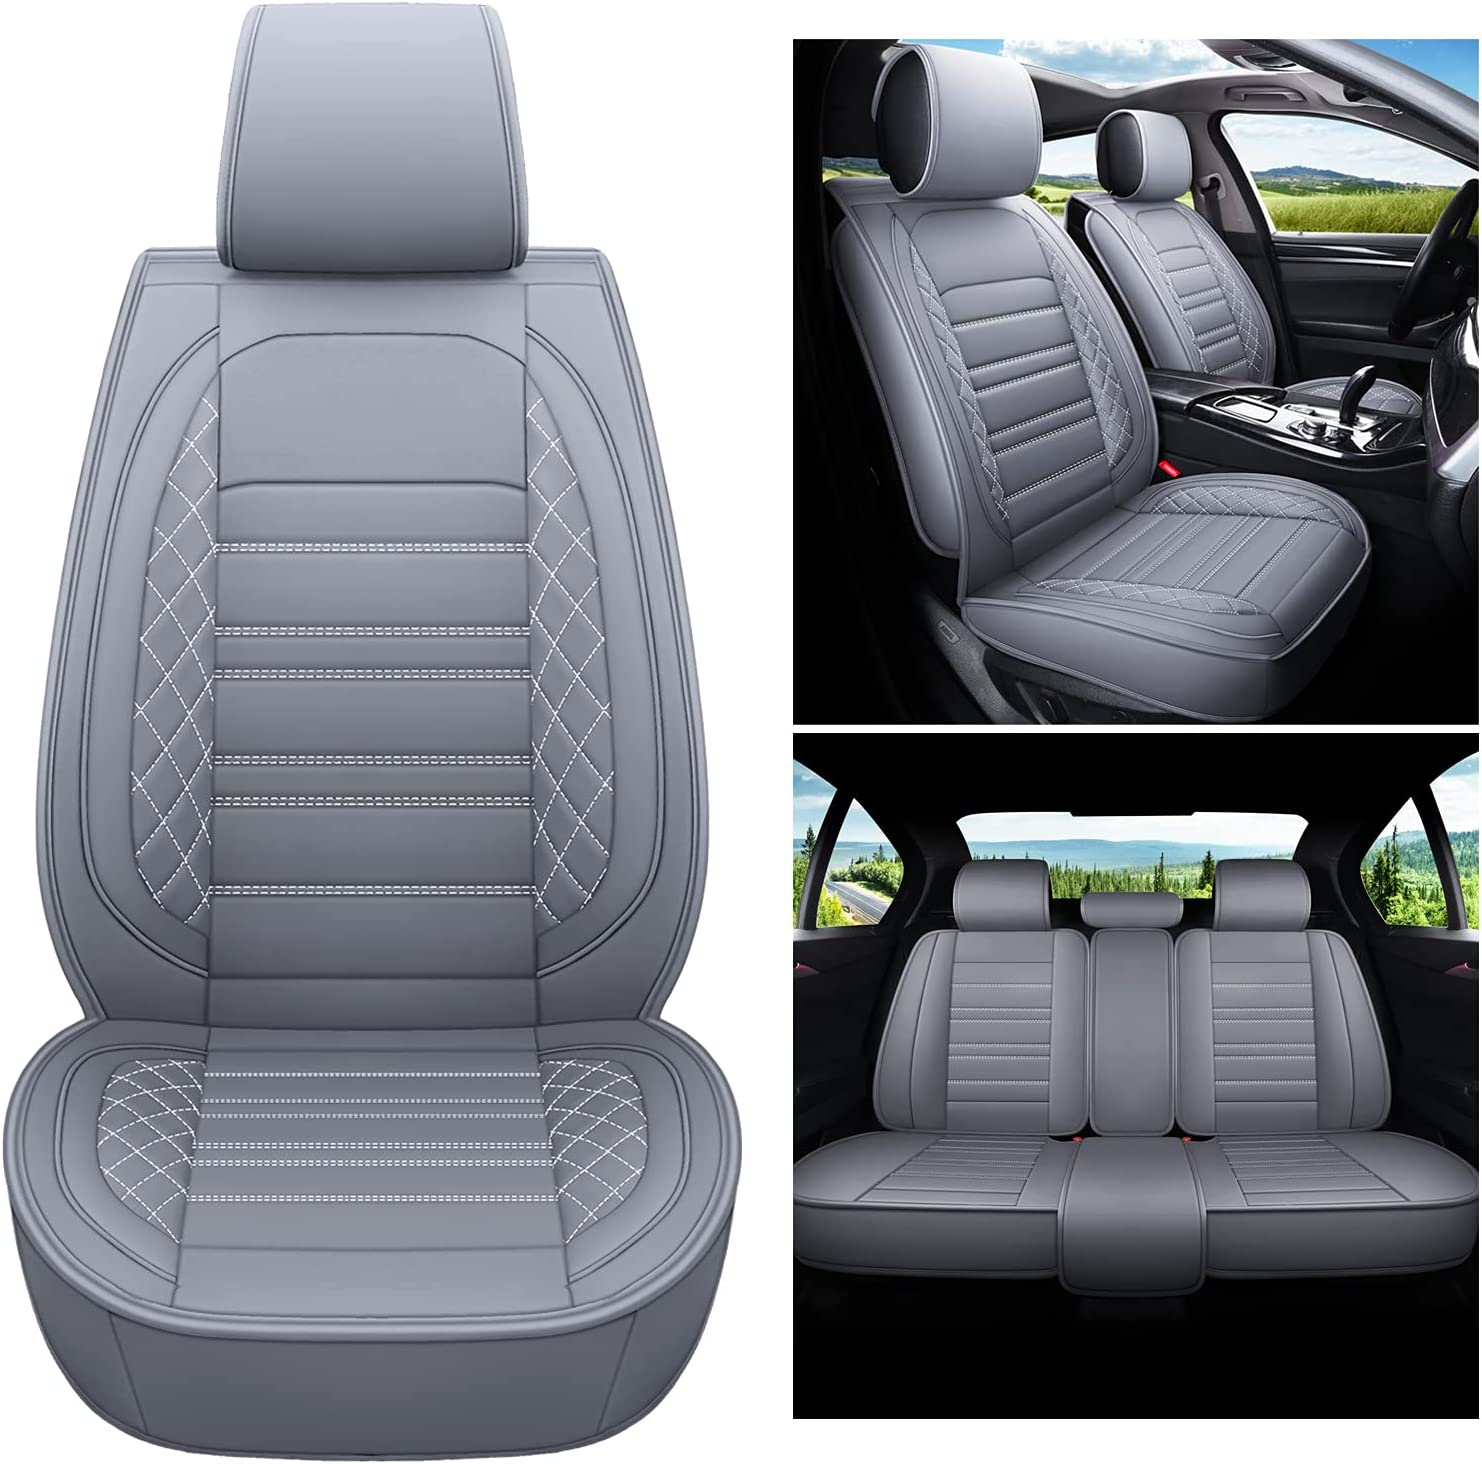 kyohans Car Seat Covers price Full Set Universal Leather 5 Seats low-pricing